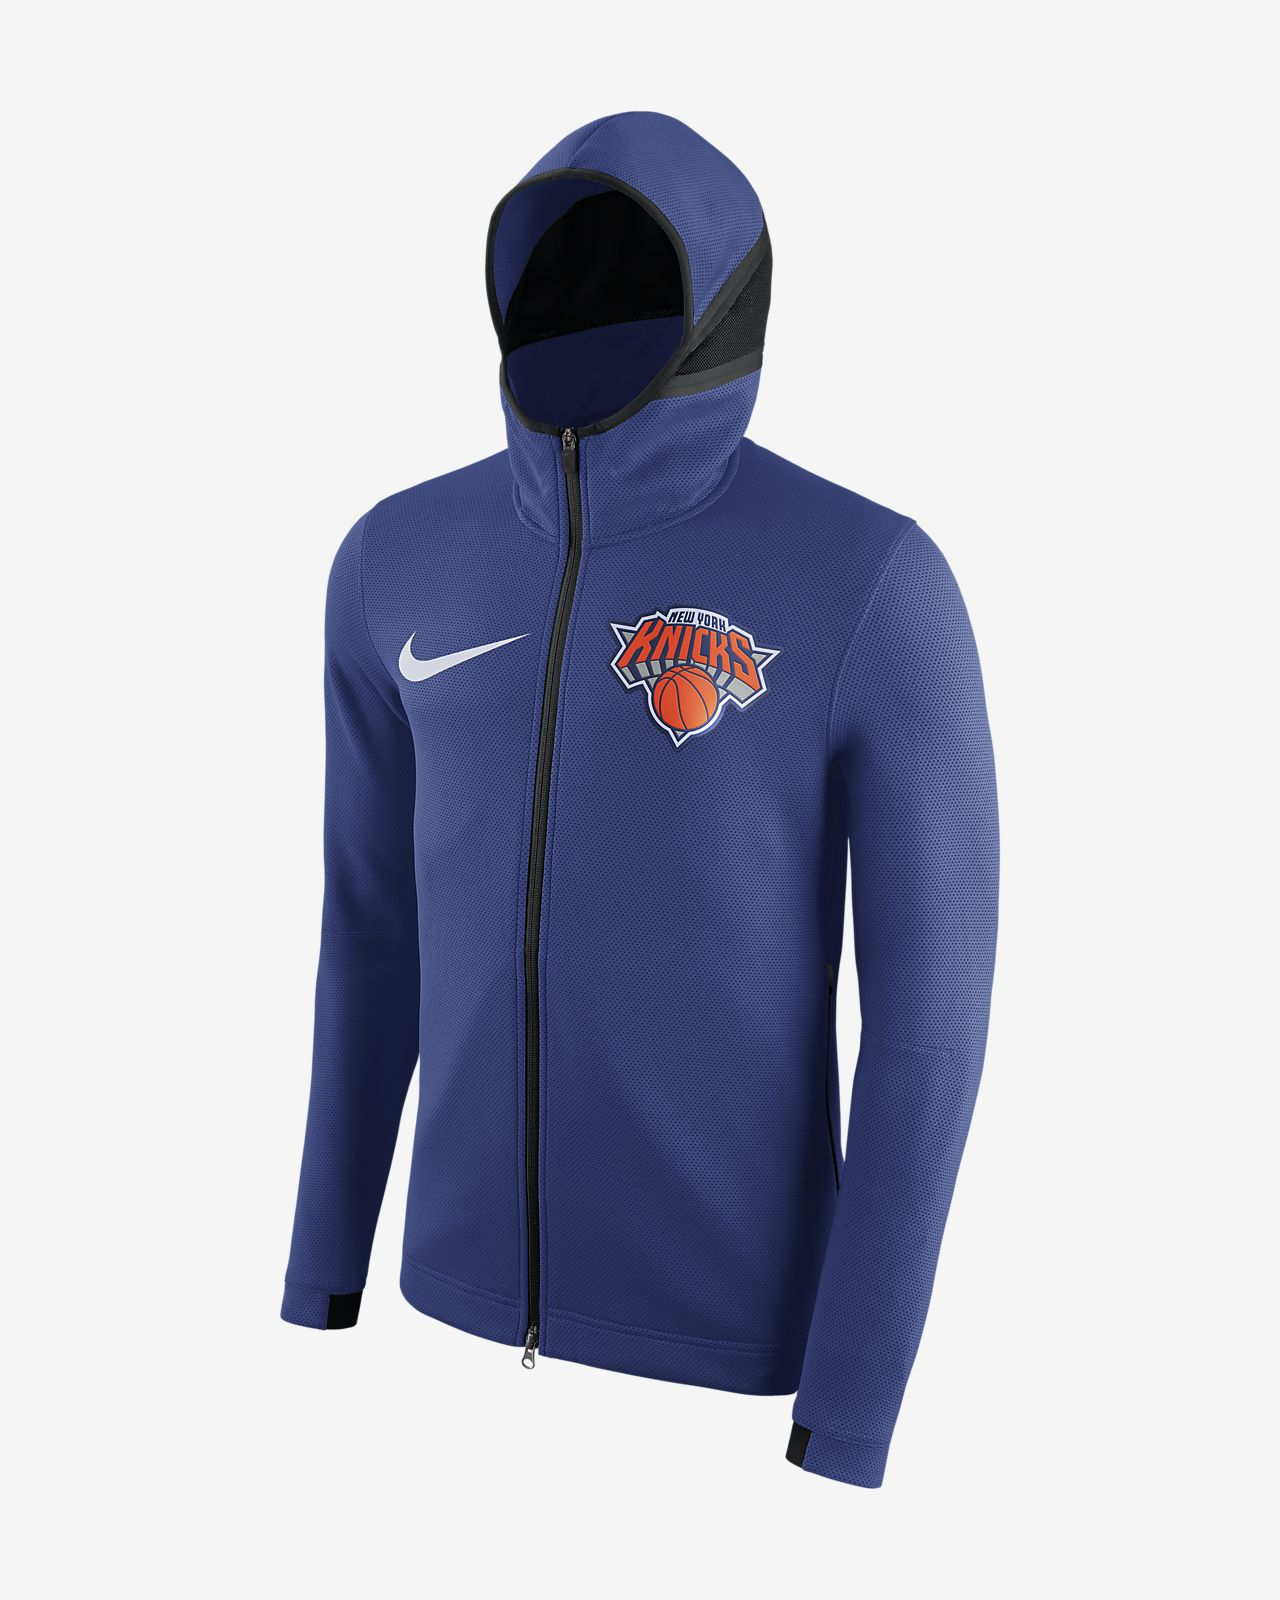 ... Felpa New York Knicks con cappuccio Nike Therma Flex Showtime NBA - Uomo 1642d35ecafe